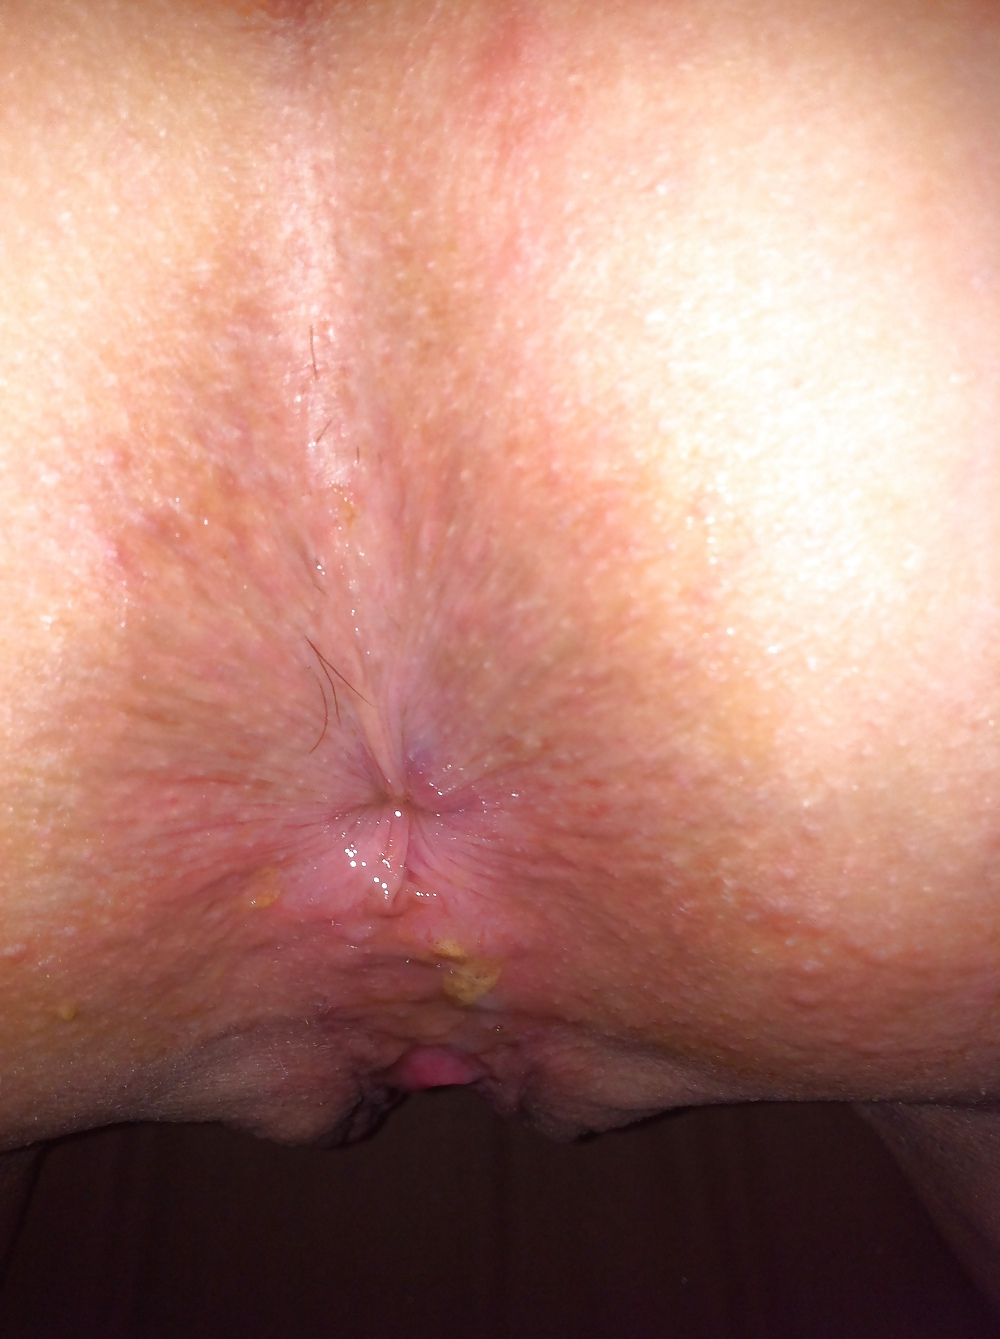 Penis pain soothing a sore penis after sex